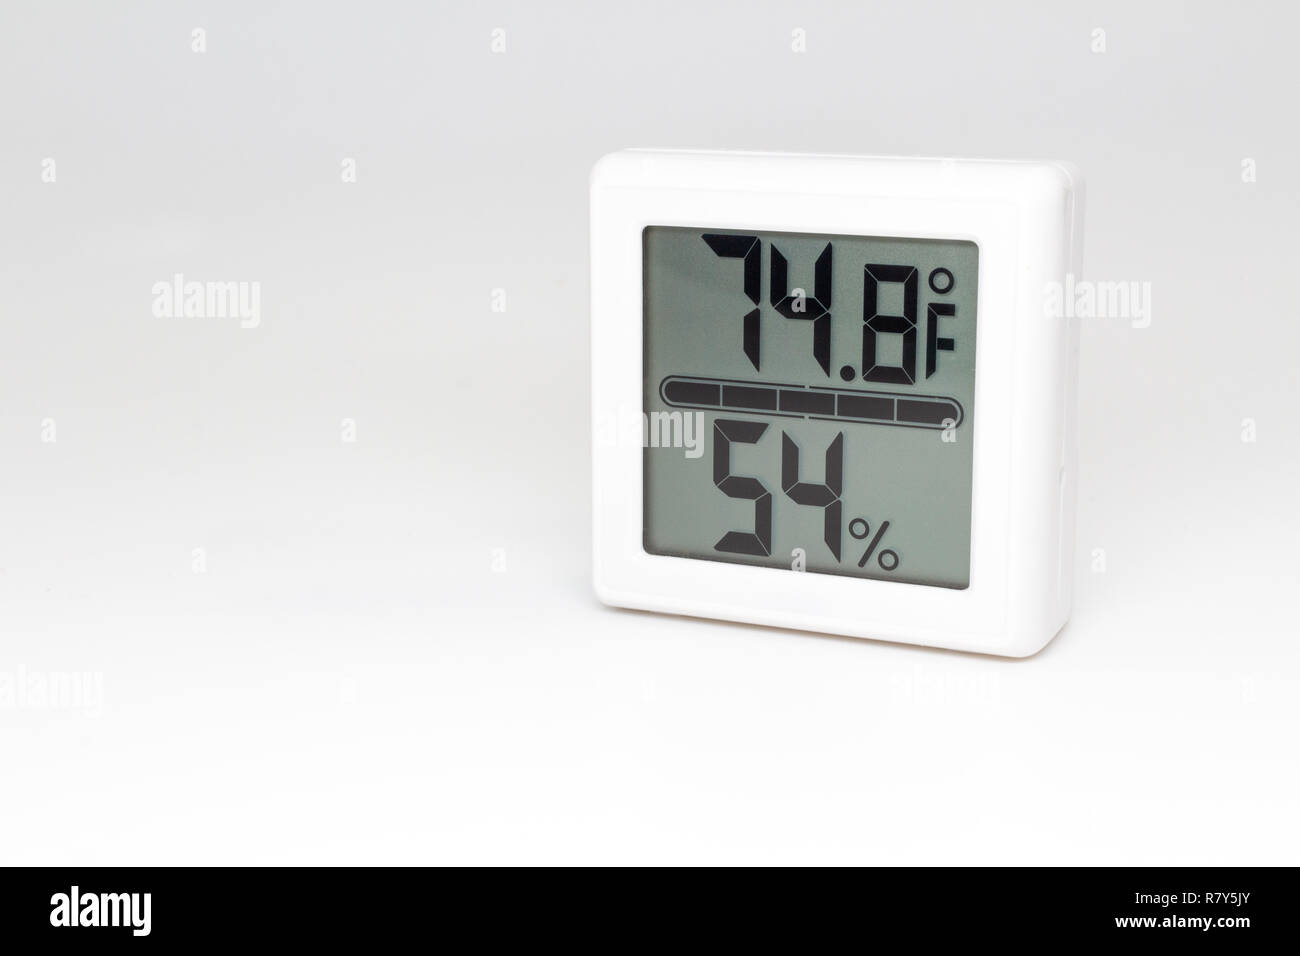 Digital device measuring temperature and humidity. Thermometer and hygrometer. Fahrenheit and percent. - Stock Image